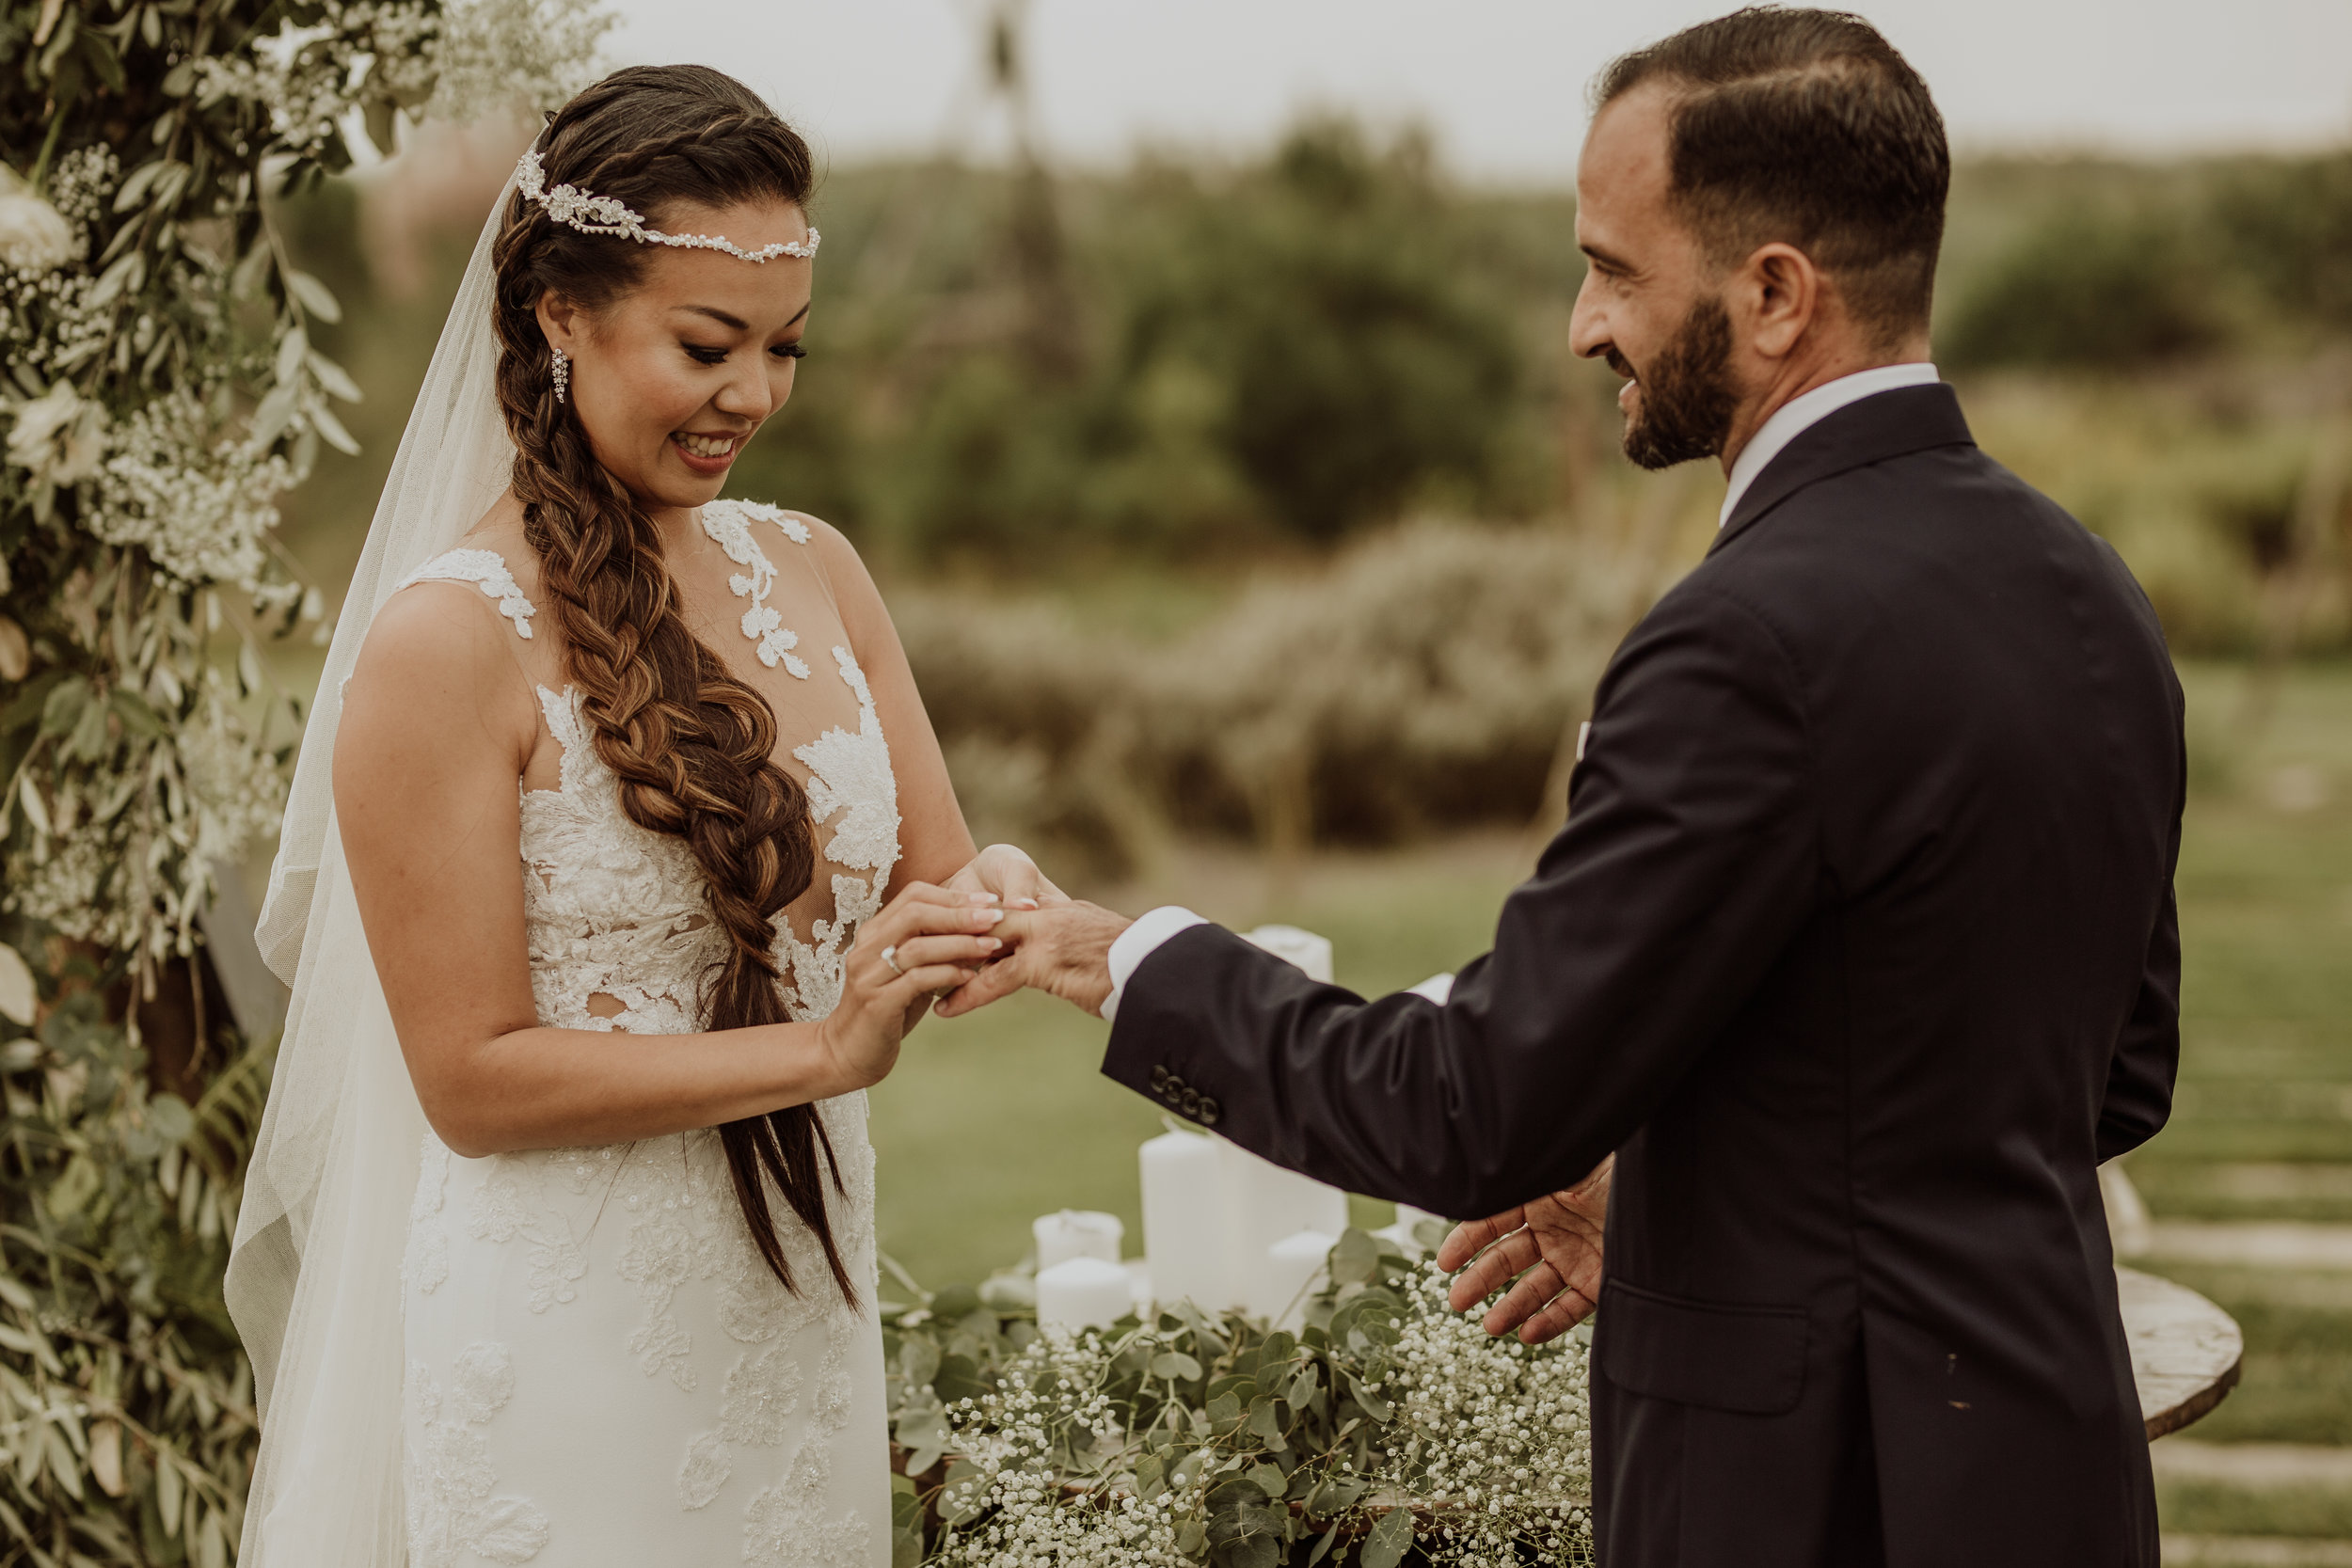 Y&M_678_15_September_2018WEDDING_DAY.jpg